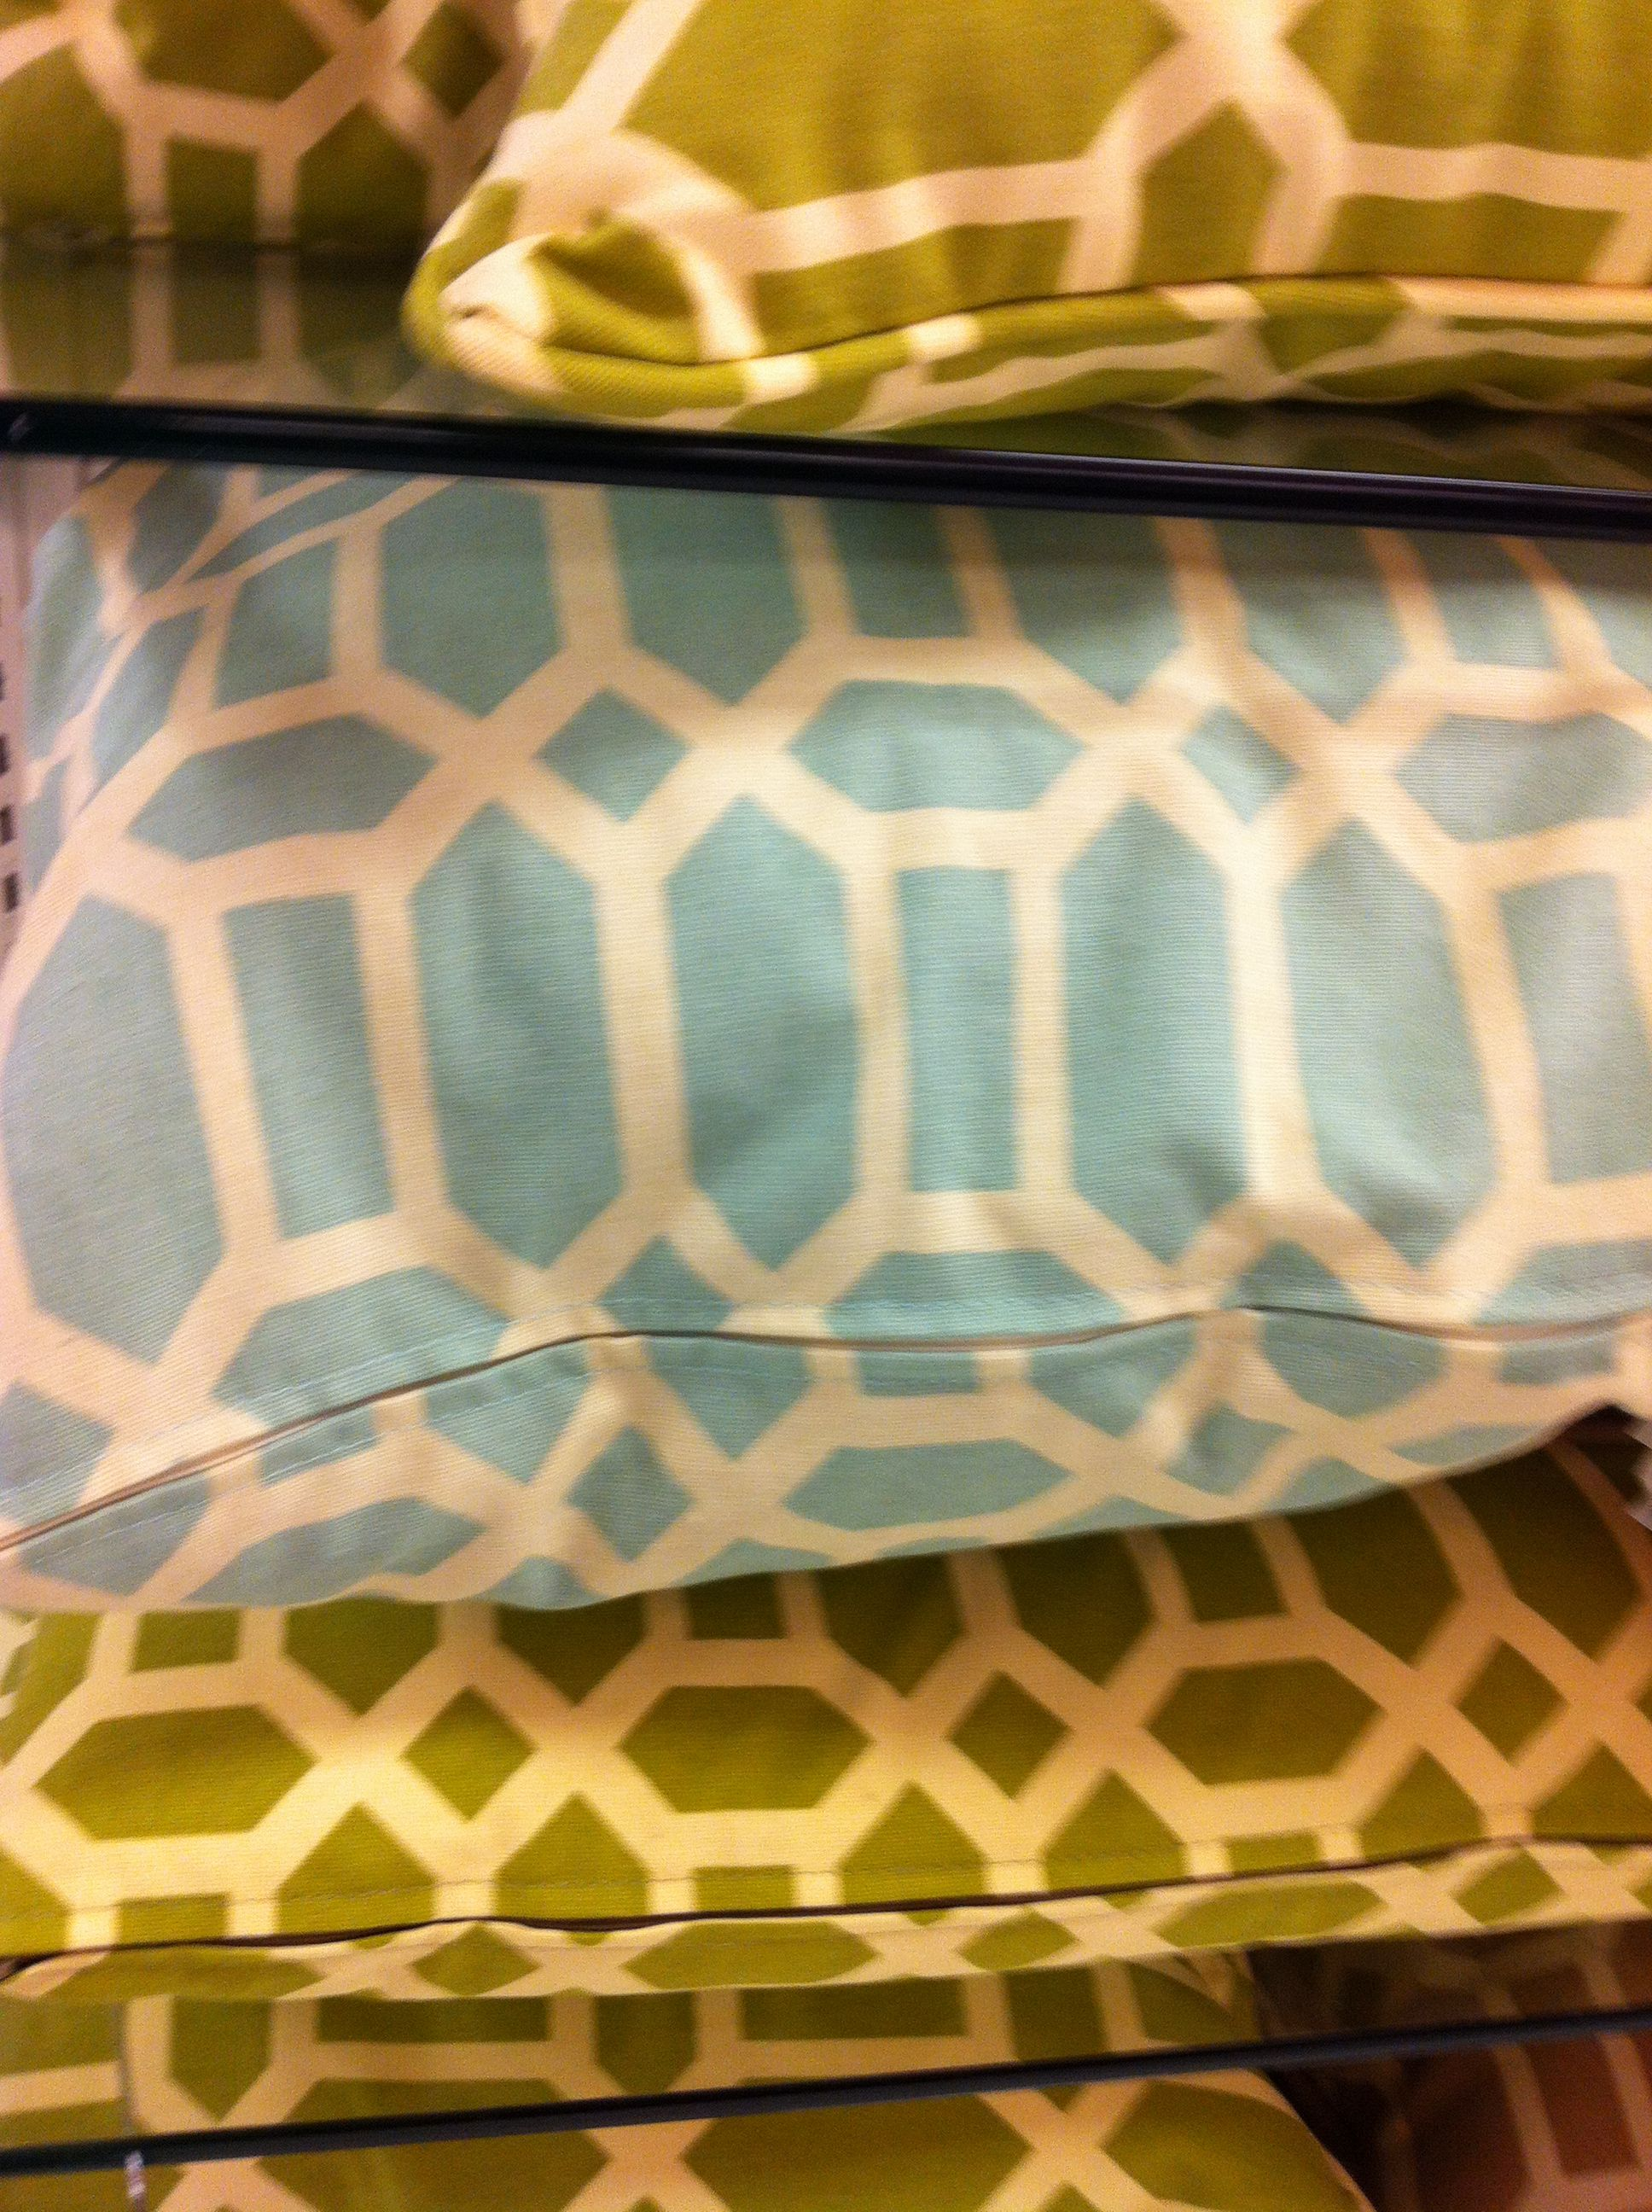 Decorative Pillows At Tj Maxx : Pin by Kristin Alvarado on Kristine and Franks house-Bainbridge Pin?